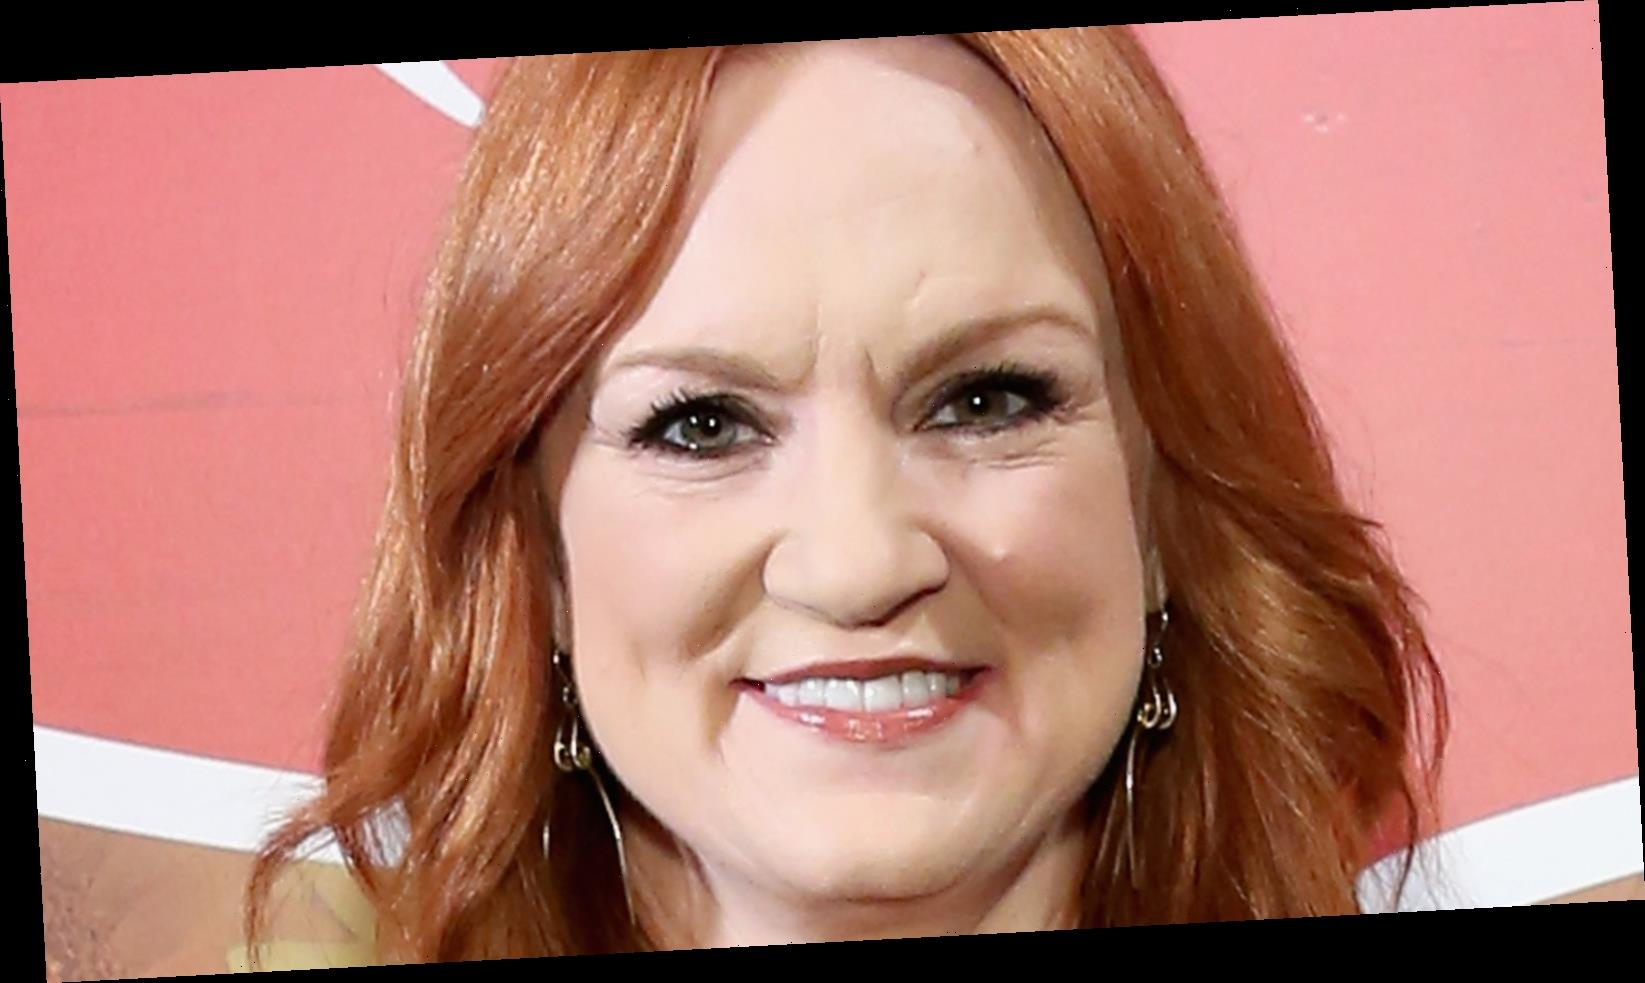 The Real Reason Ree Drummond Gave Up Law School